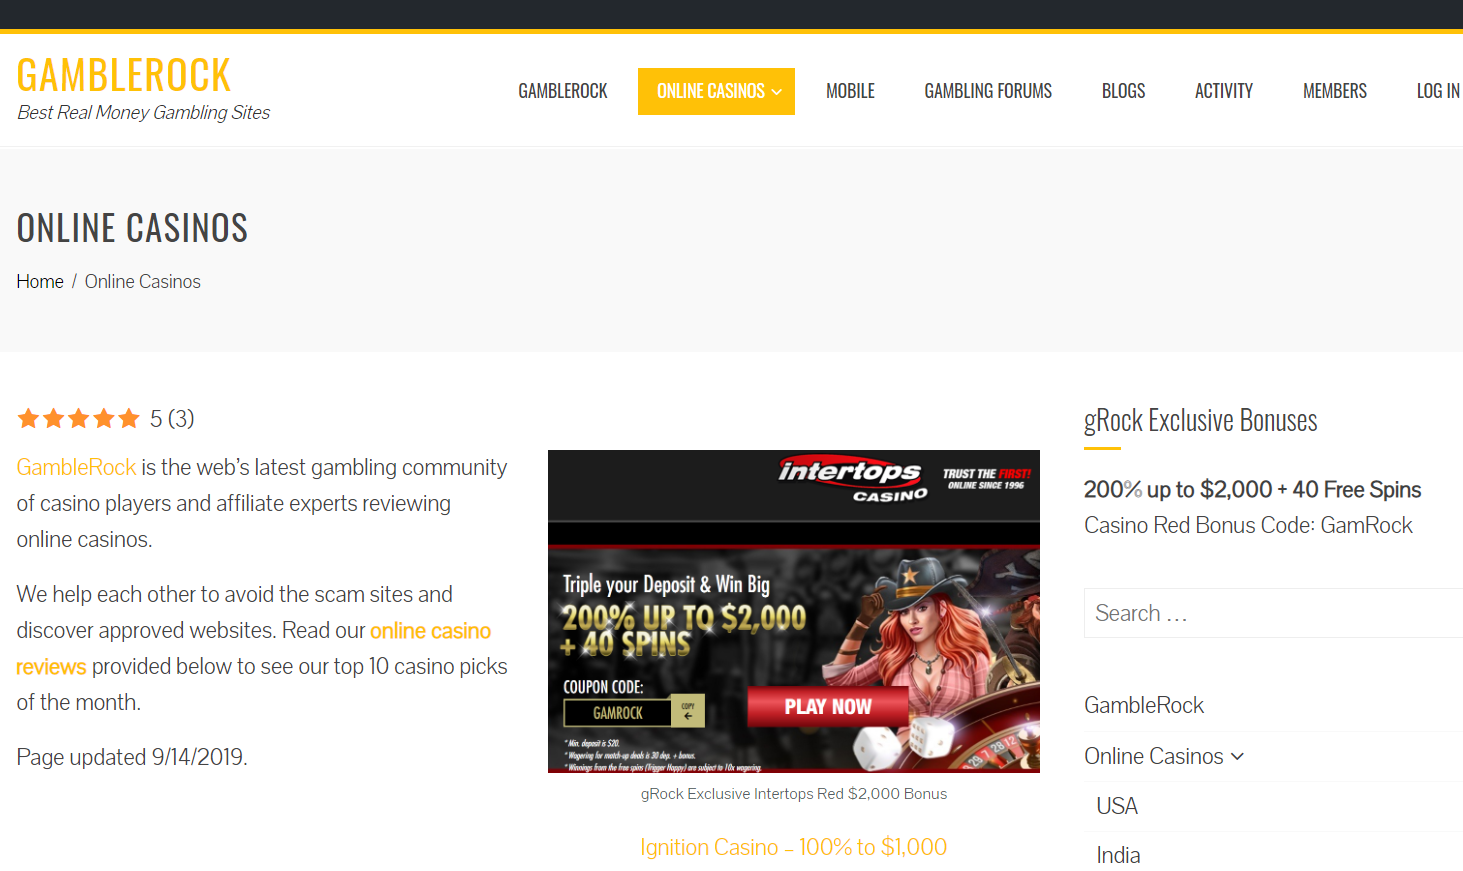 Gamble Rock Reviews The Top Online Casino Sites Worldwide By